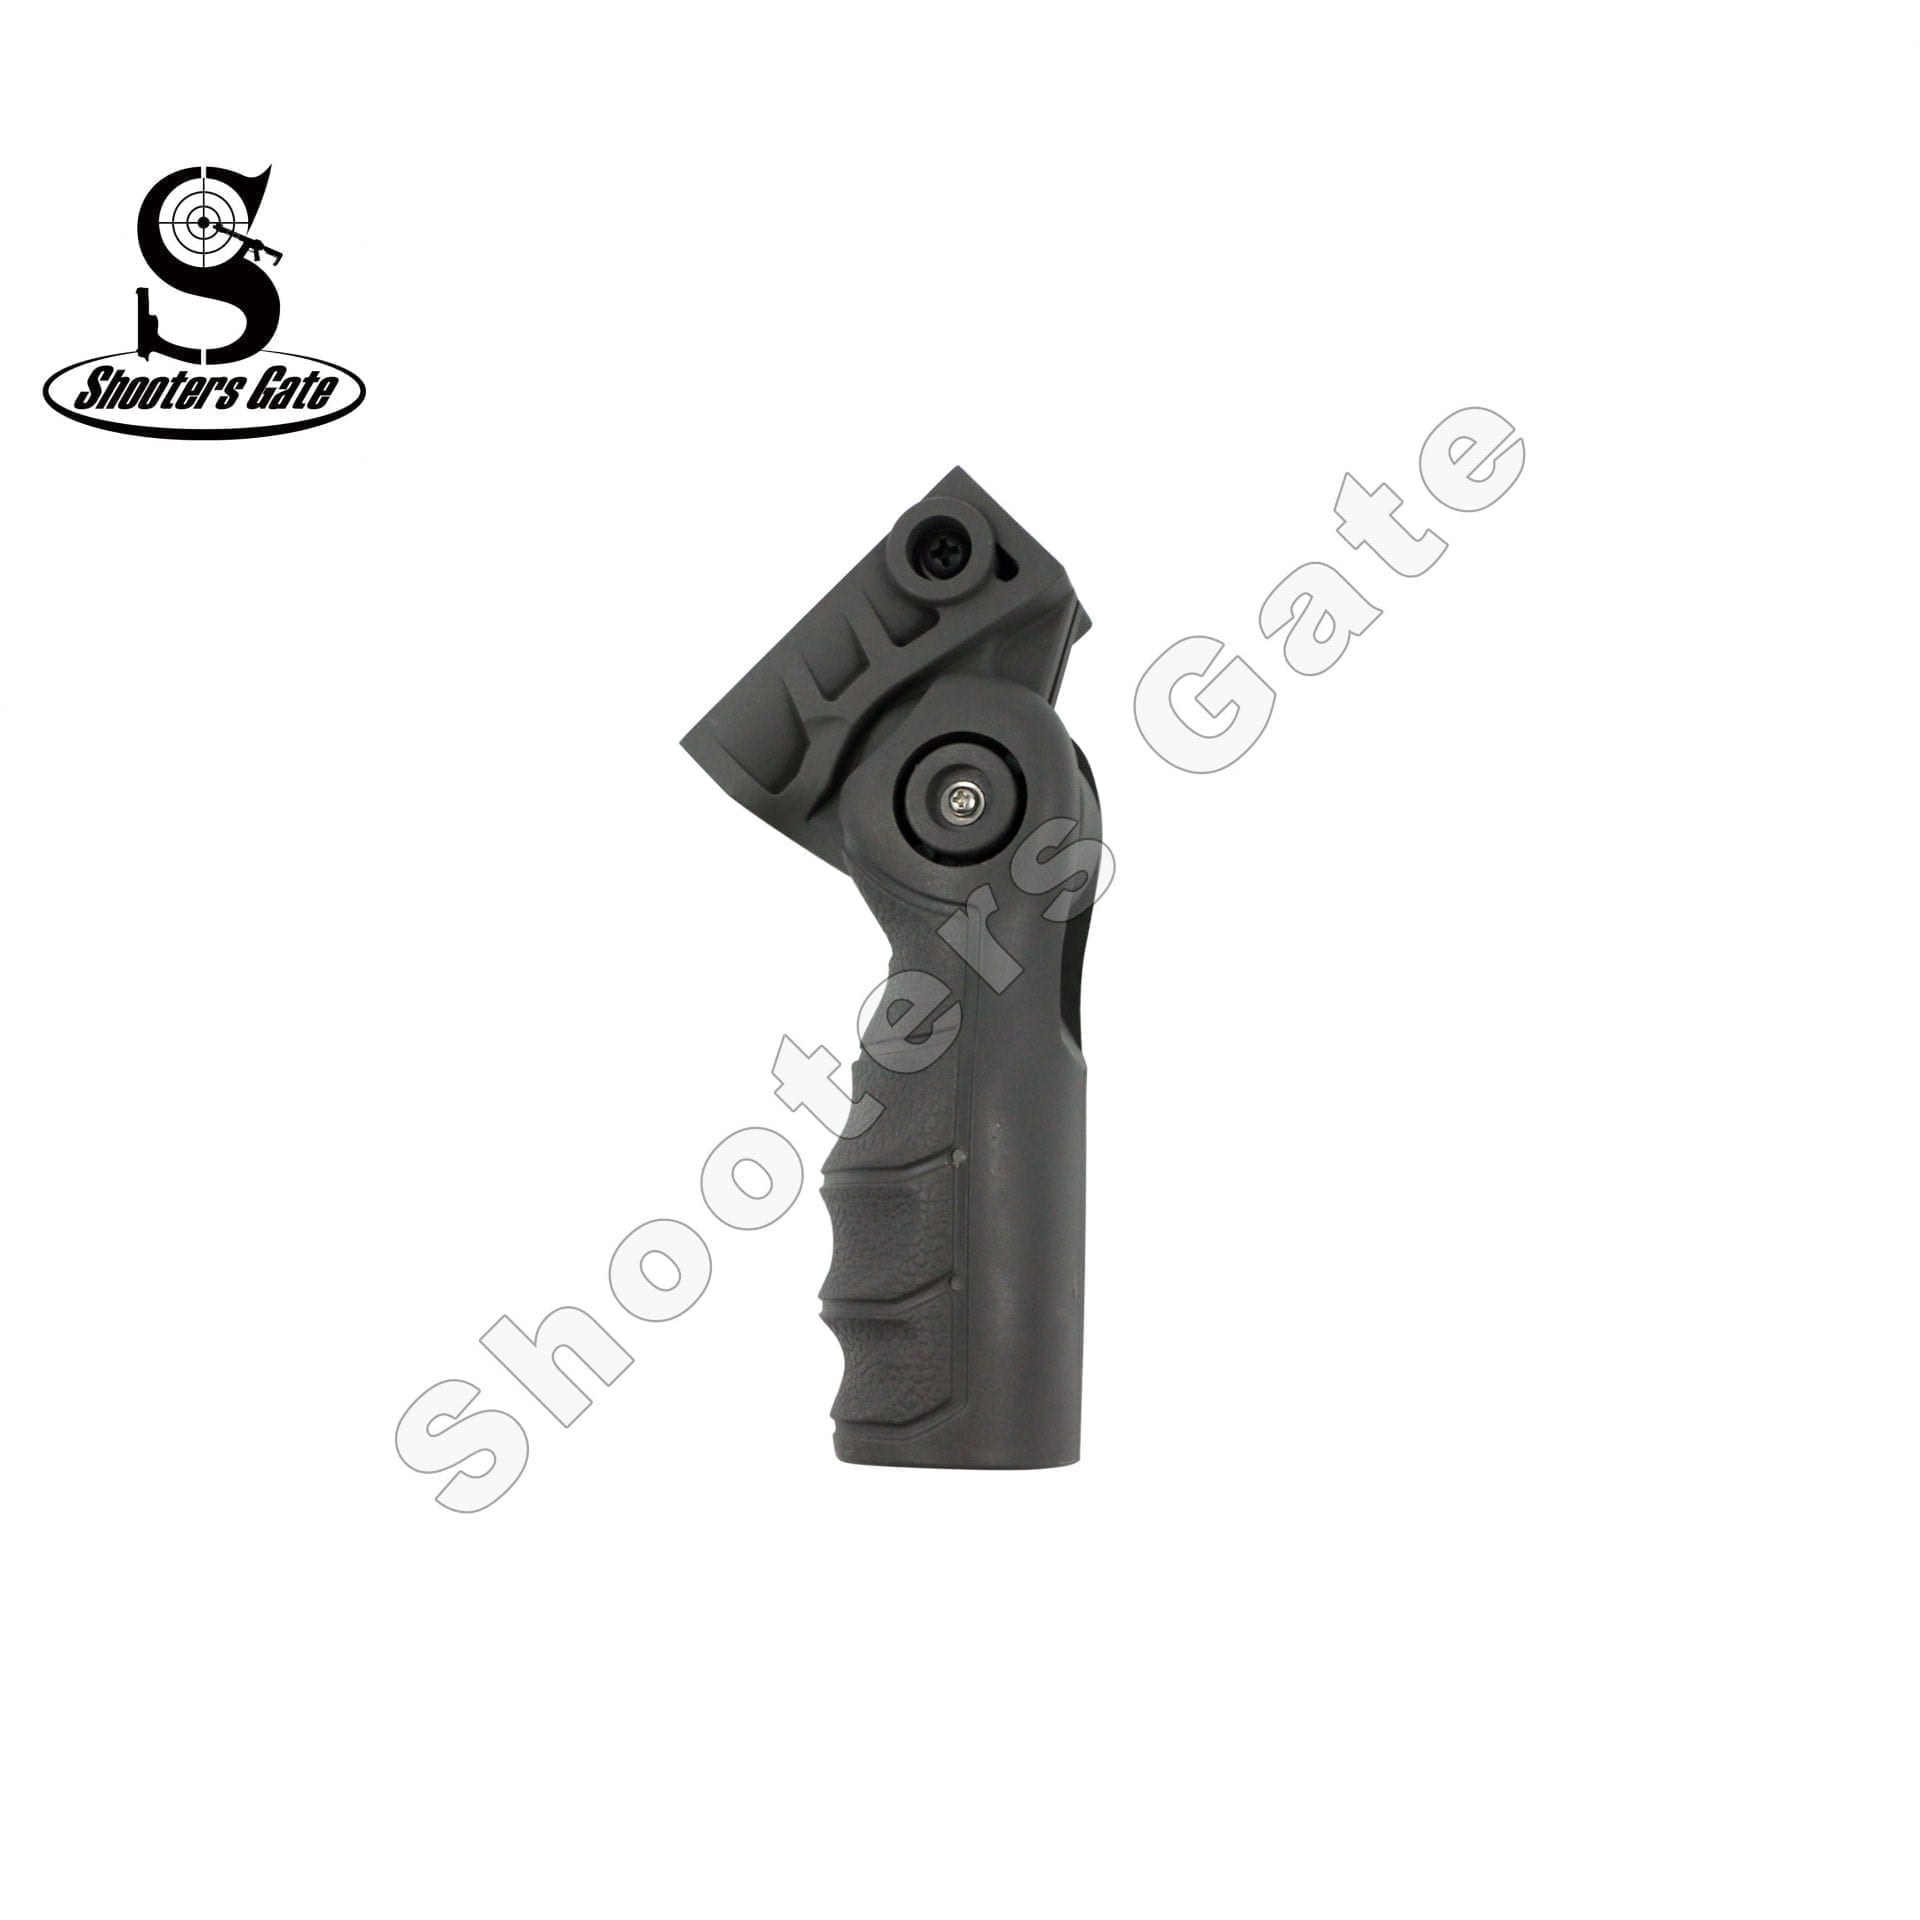 5 Positions Tactical Foregrip OD